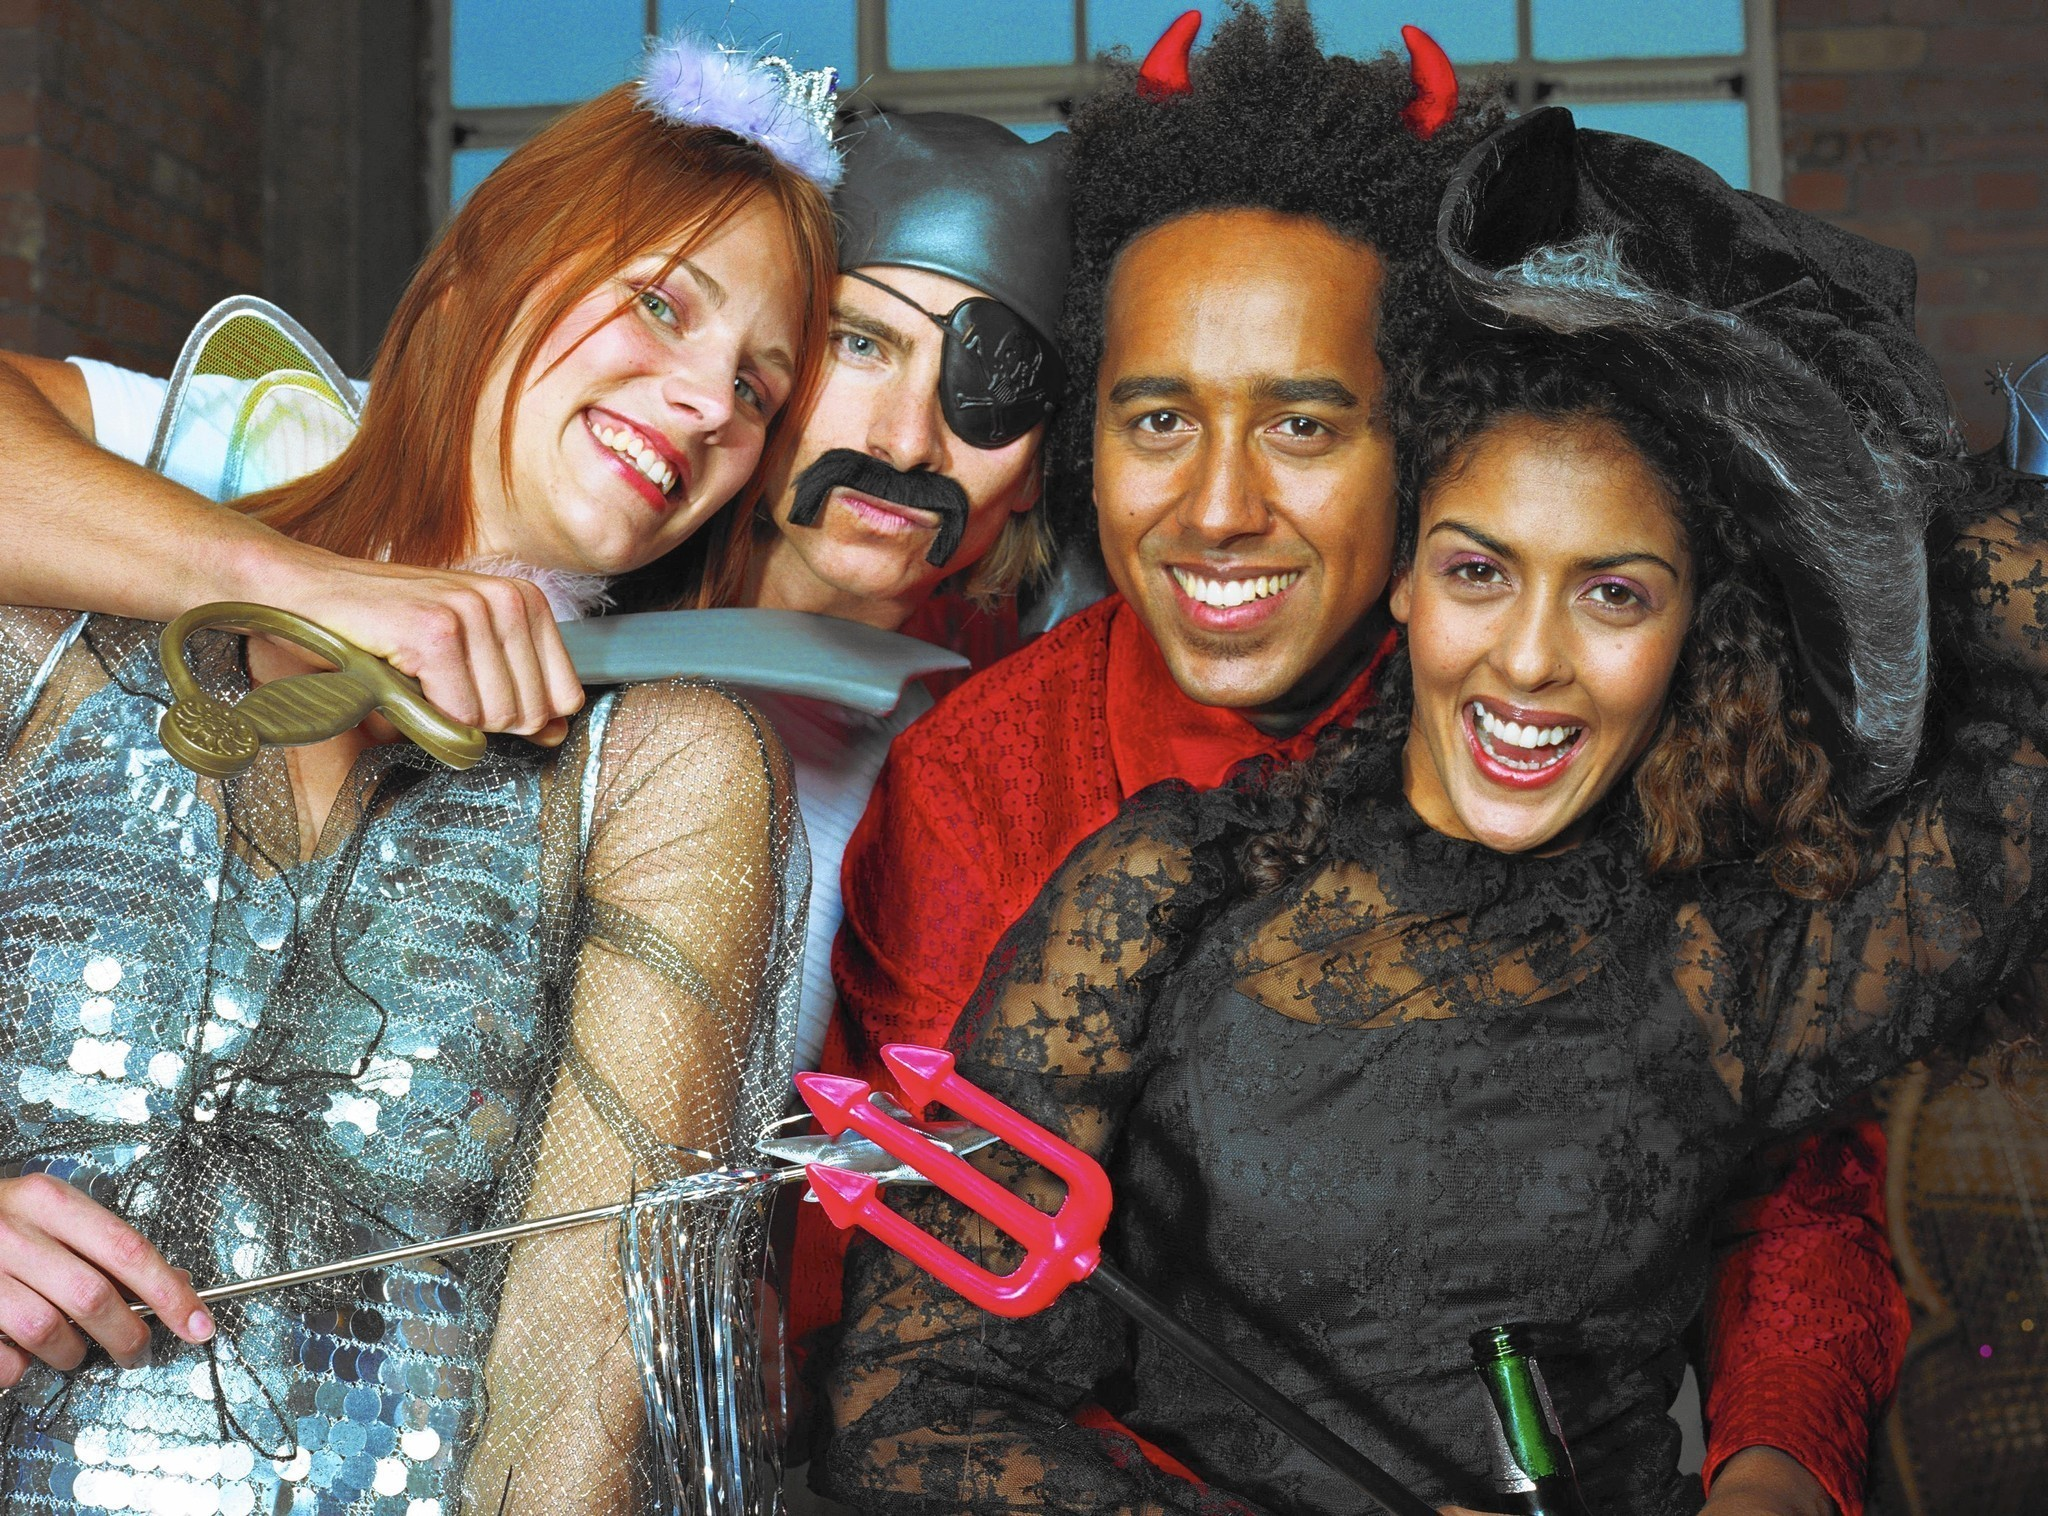 Looking for love at a Halloween party - Chicago Tribune